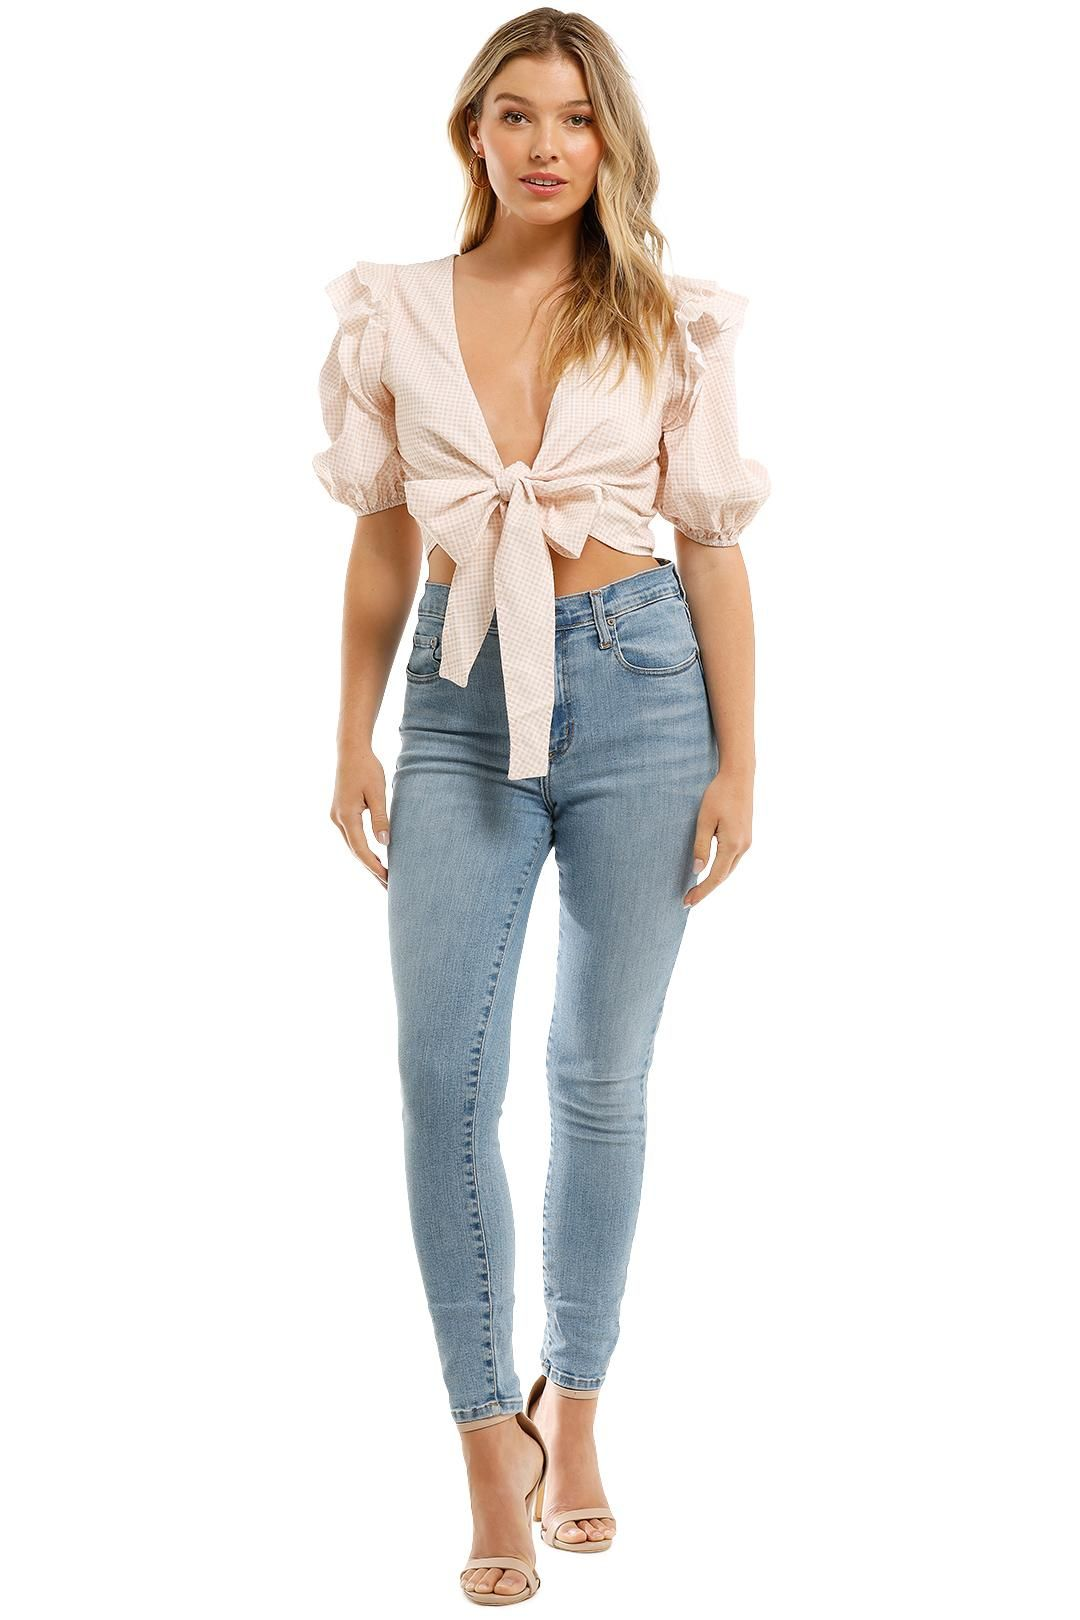 Charlie Holiday Louie Top Biscuit Gingham Tie Front